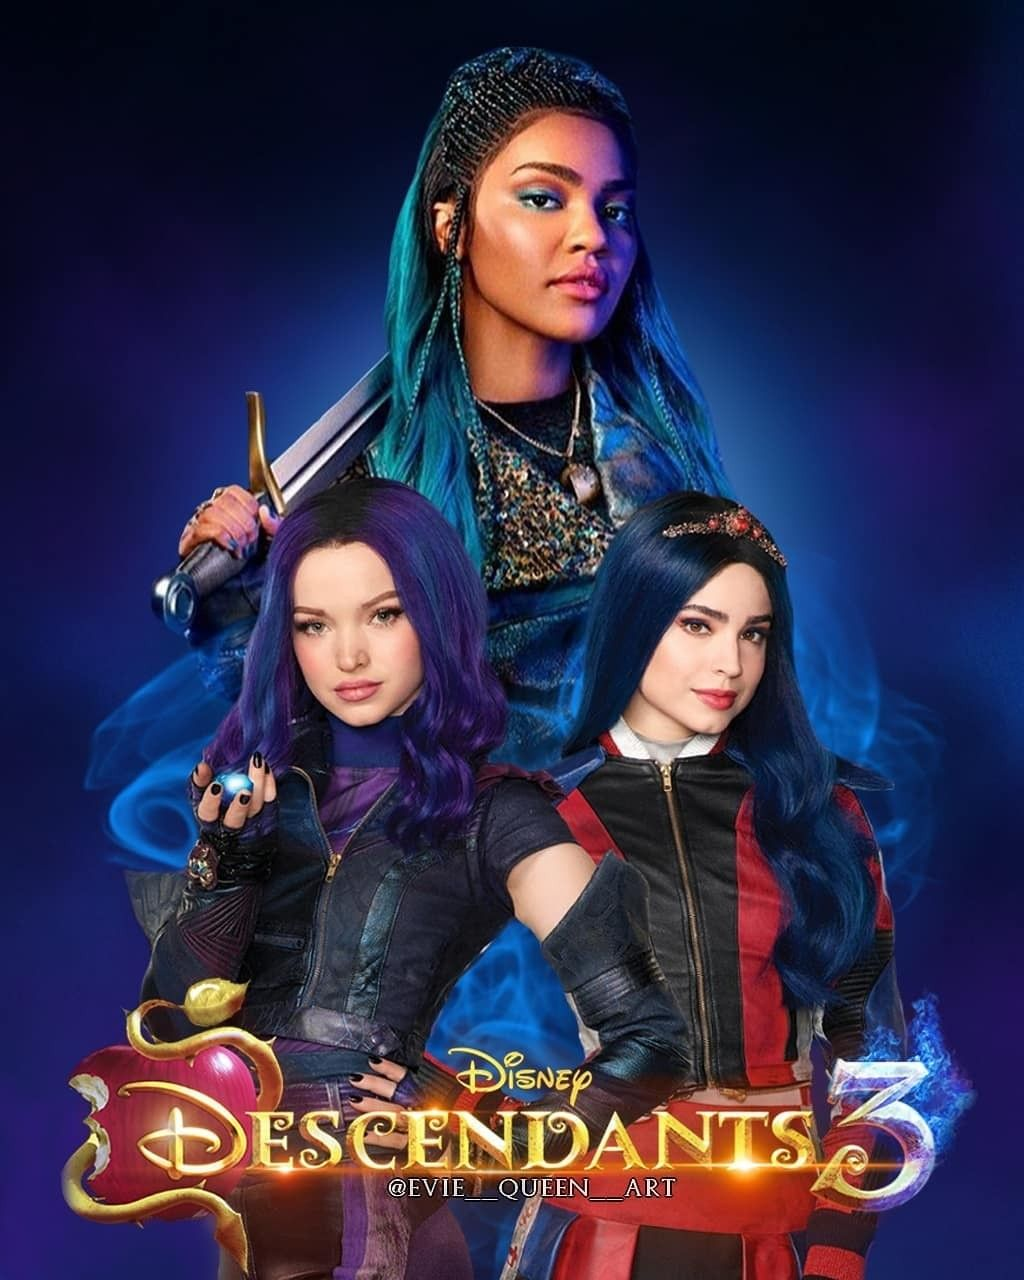 #descendants3